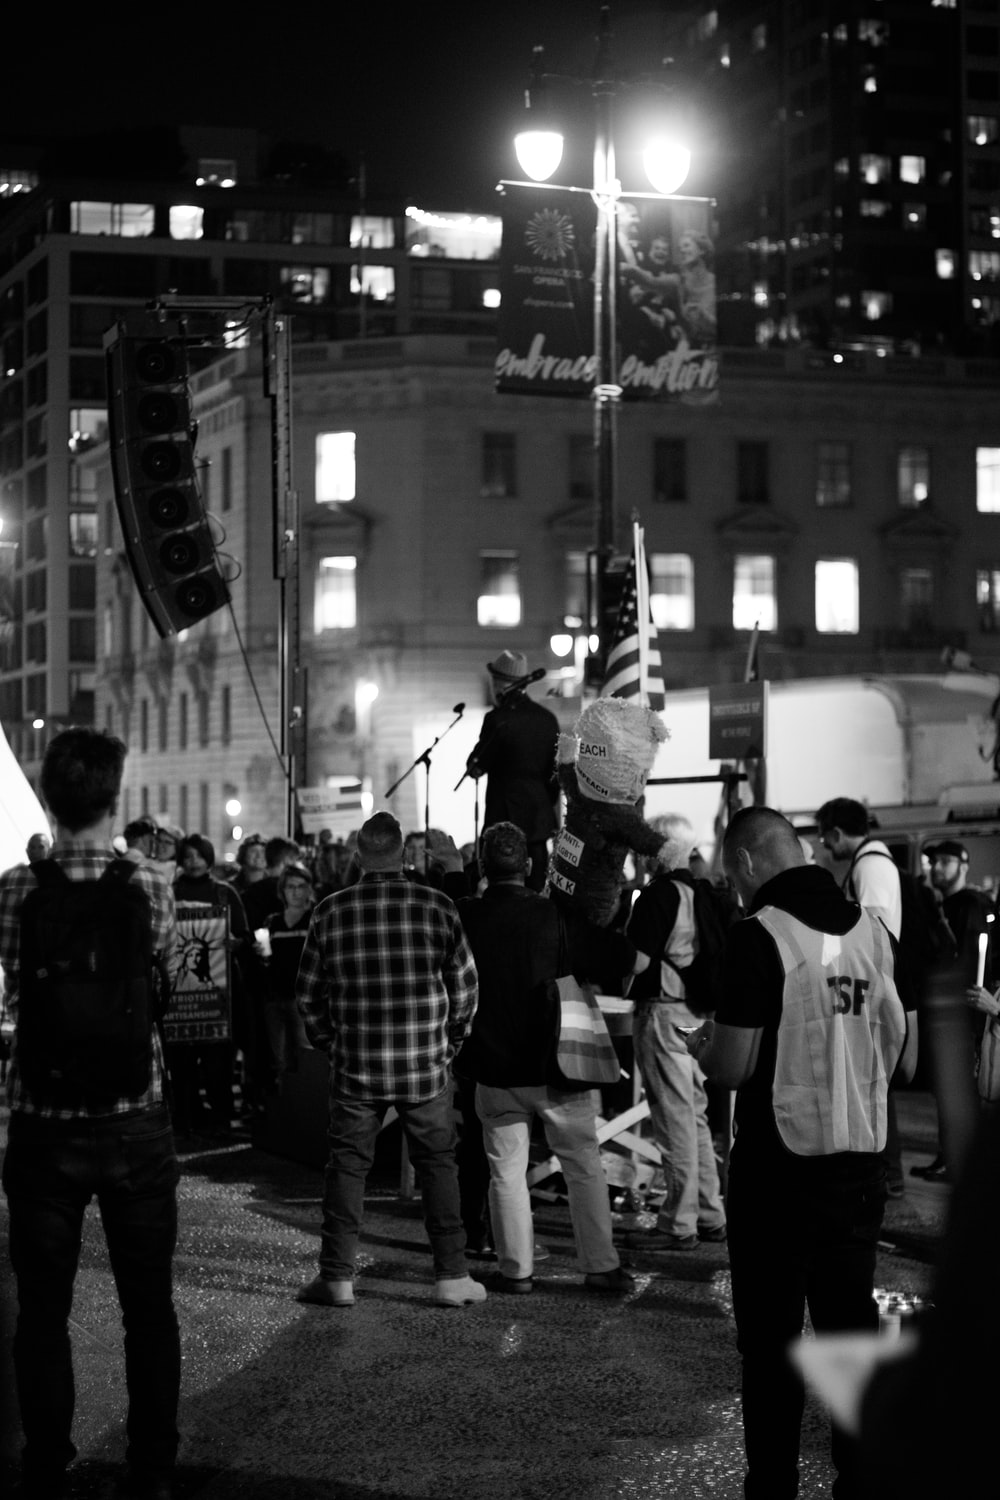 grayscale photography of people protesting on road